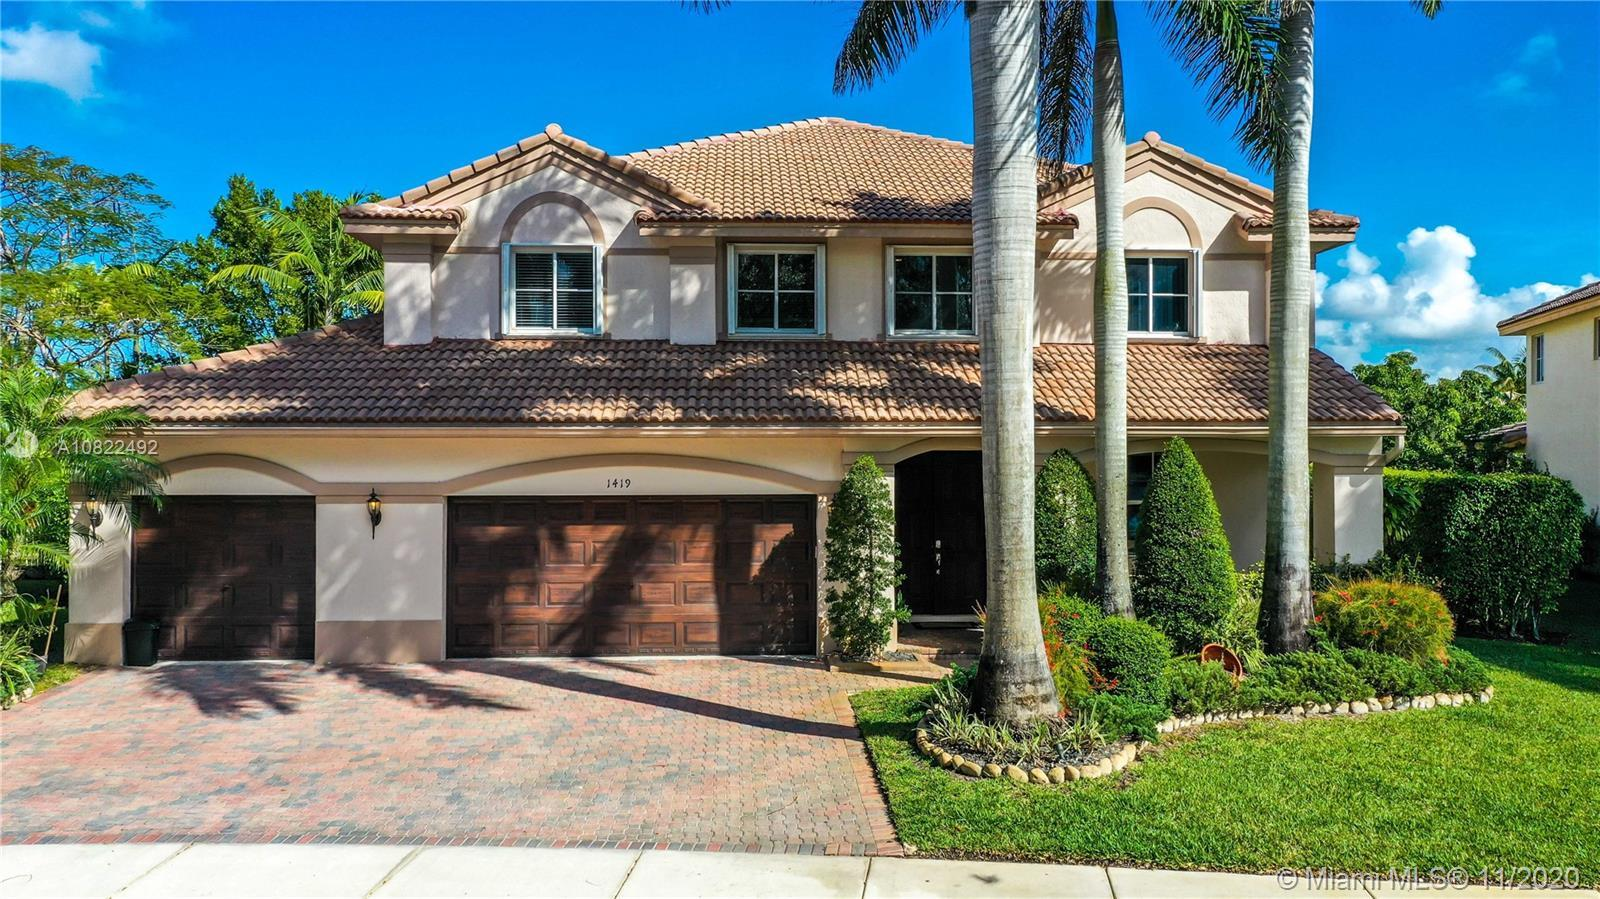 GORGEOUS SINGLE FAMILY HOME IN THE PRESTIGIOUS SAVANNA GATED COMMUNITY. VERY SPACIOUS AND BRIGHT 7 B